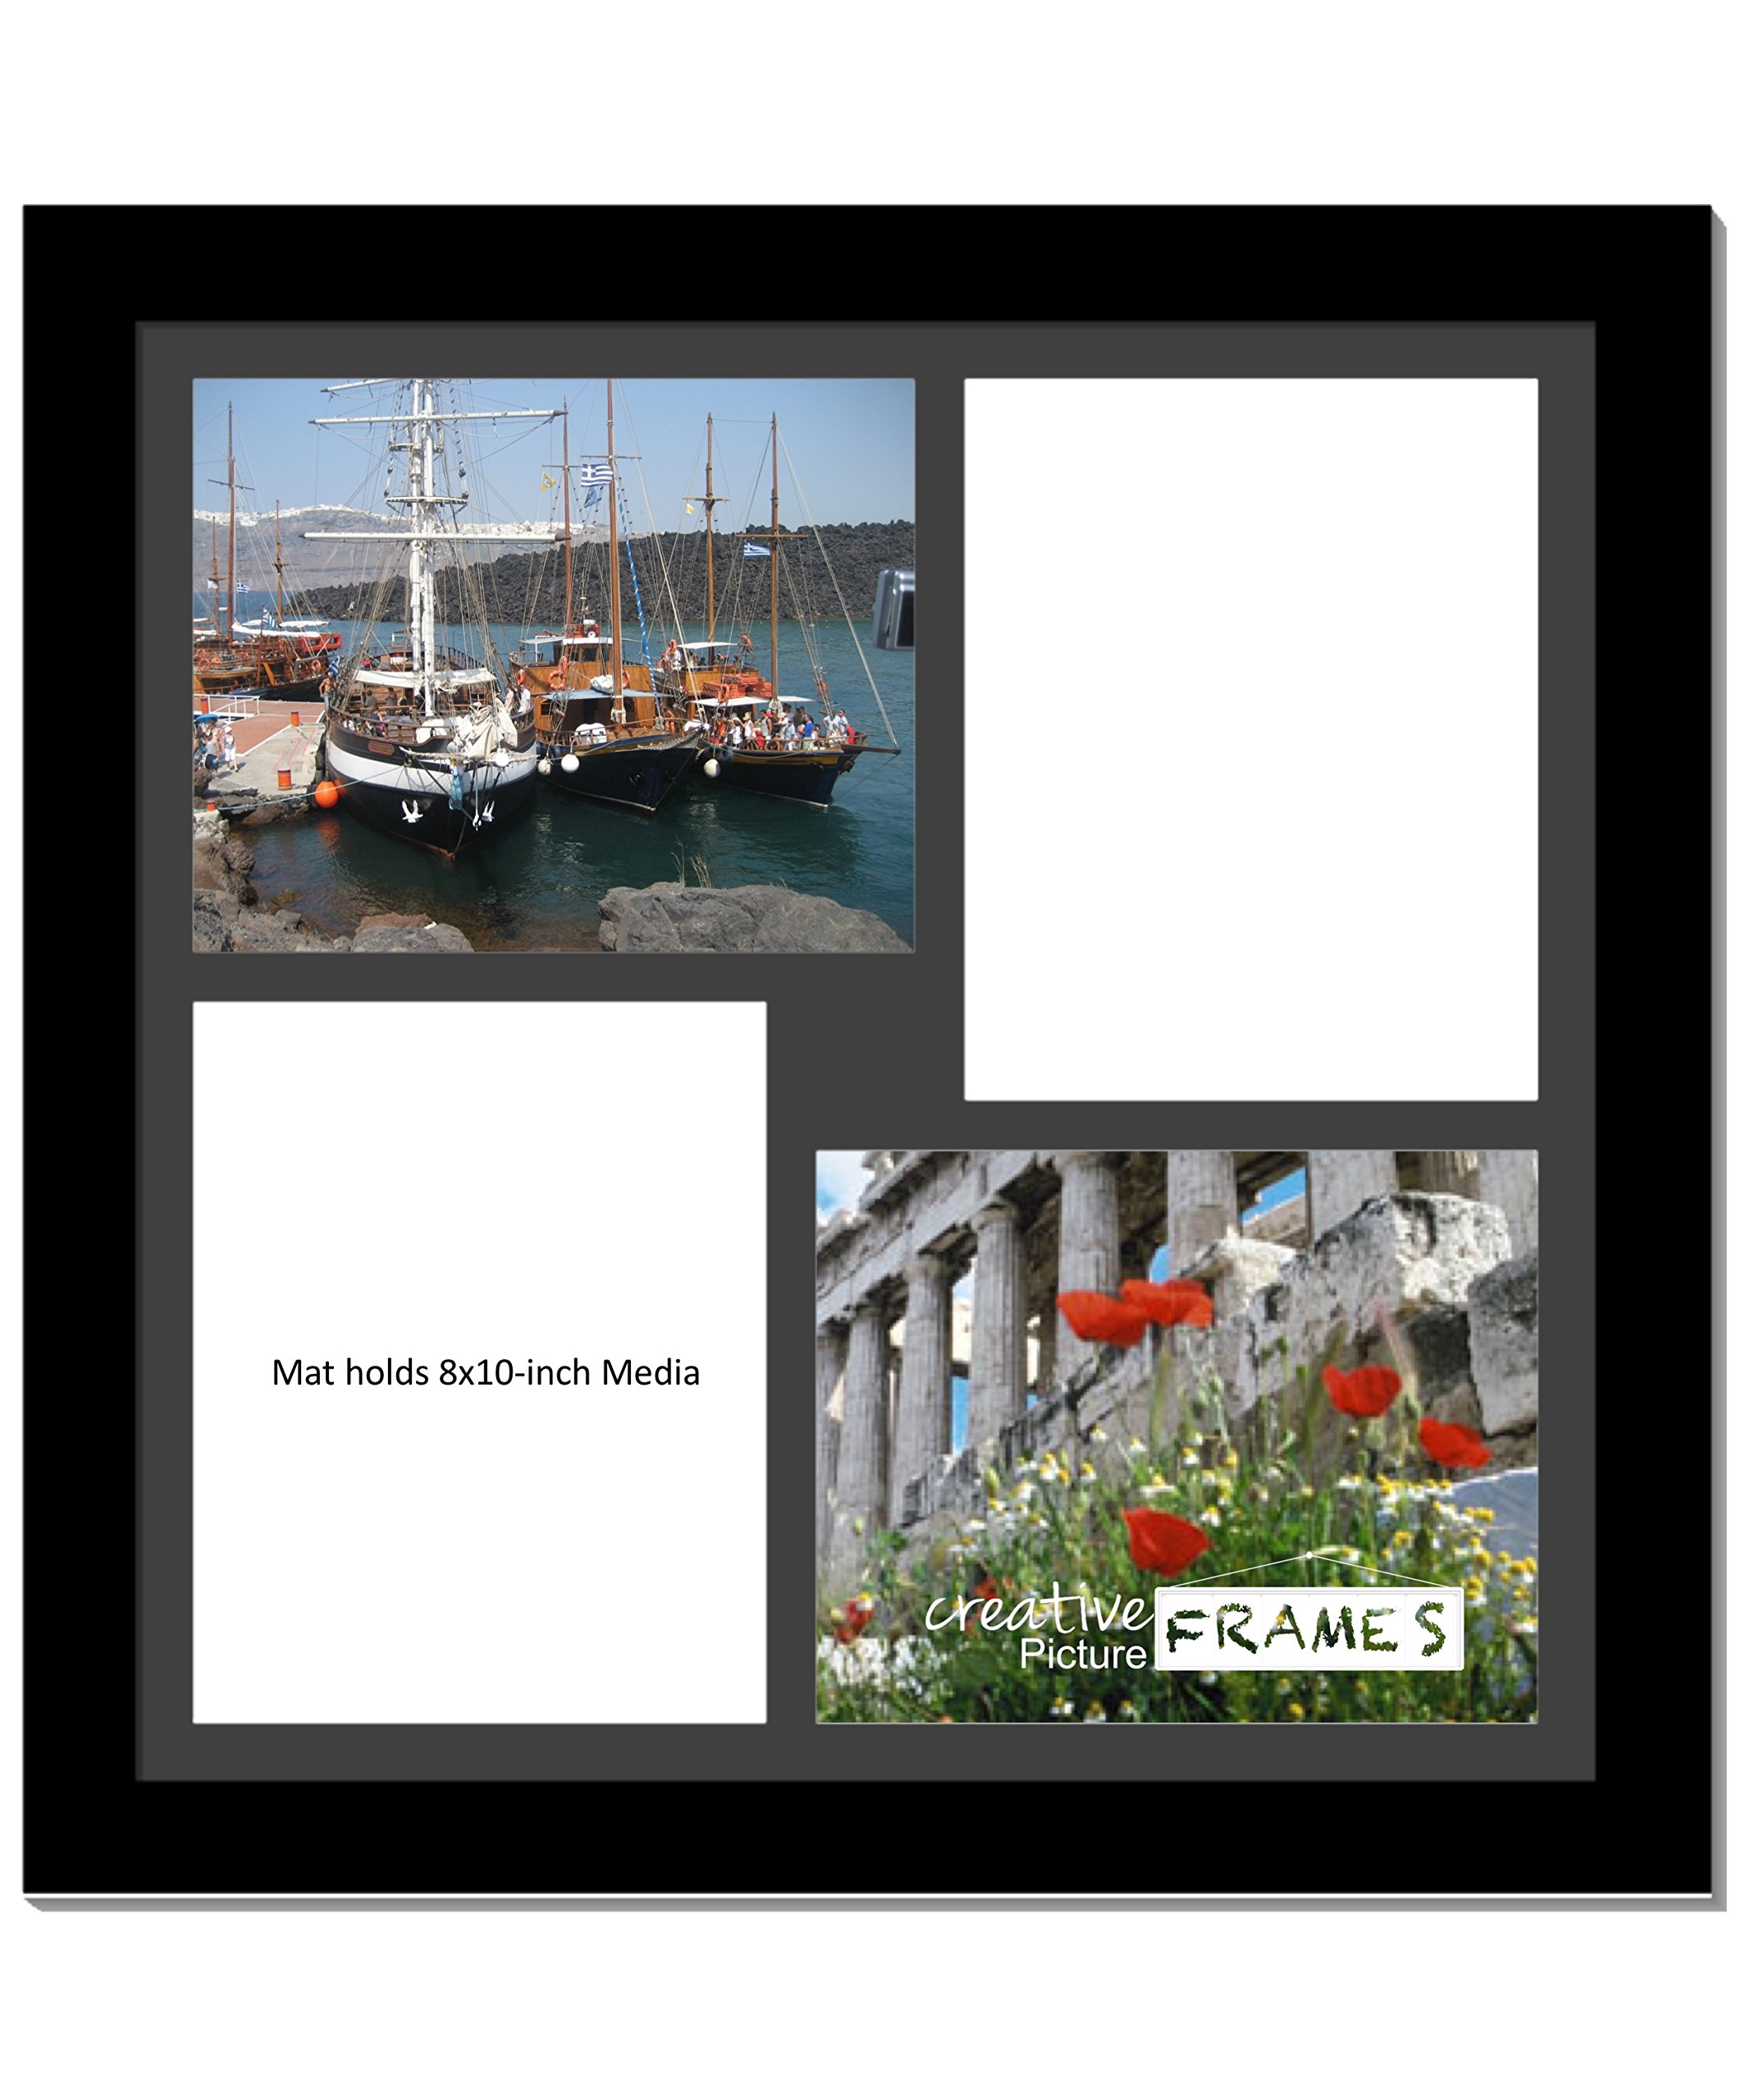 CreativePF [2020bk] Black Picture Frame with 4 Opening Black Mat/White Core Core Collage to Hold 8x10-inch Media,Includes Installed Sawtooth Hangers